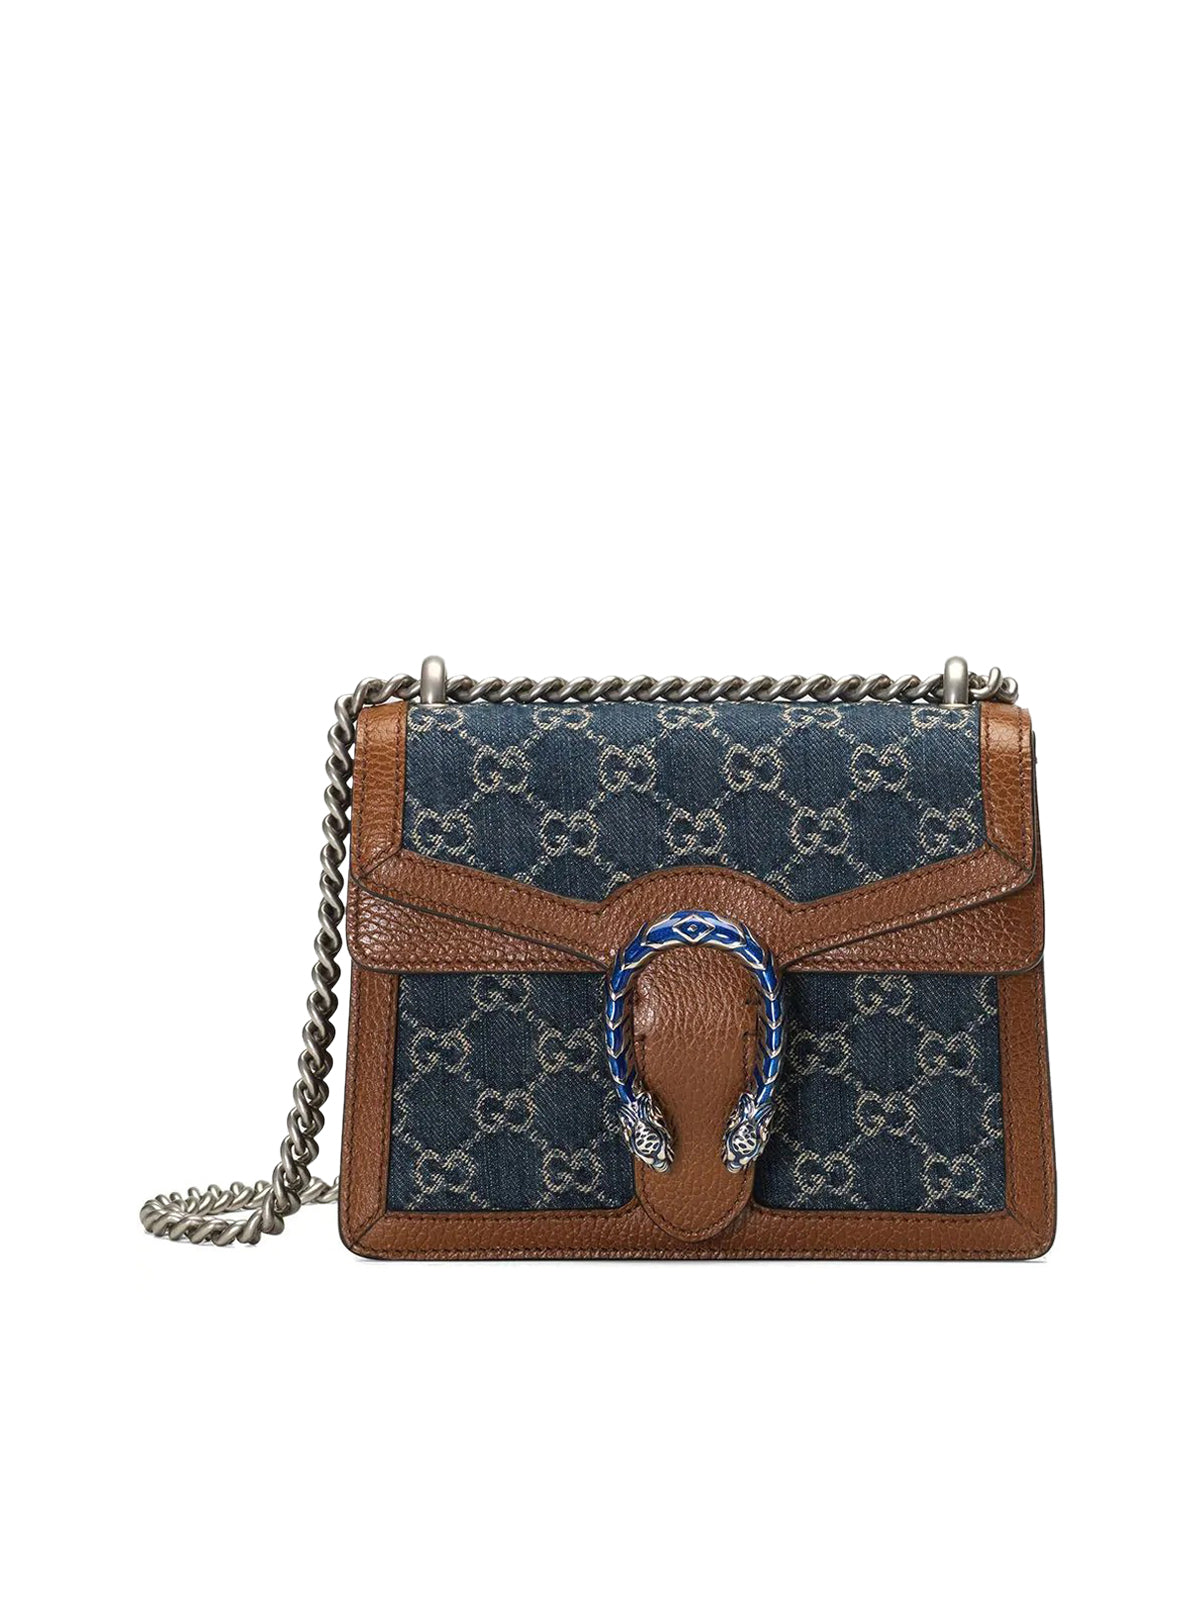 mini Dionysus crossbody bag